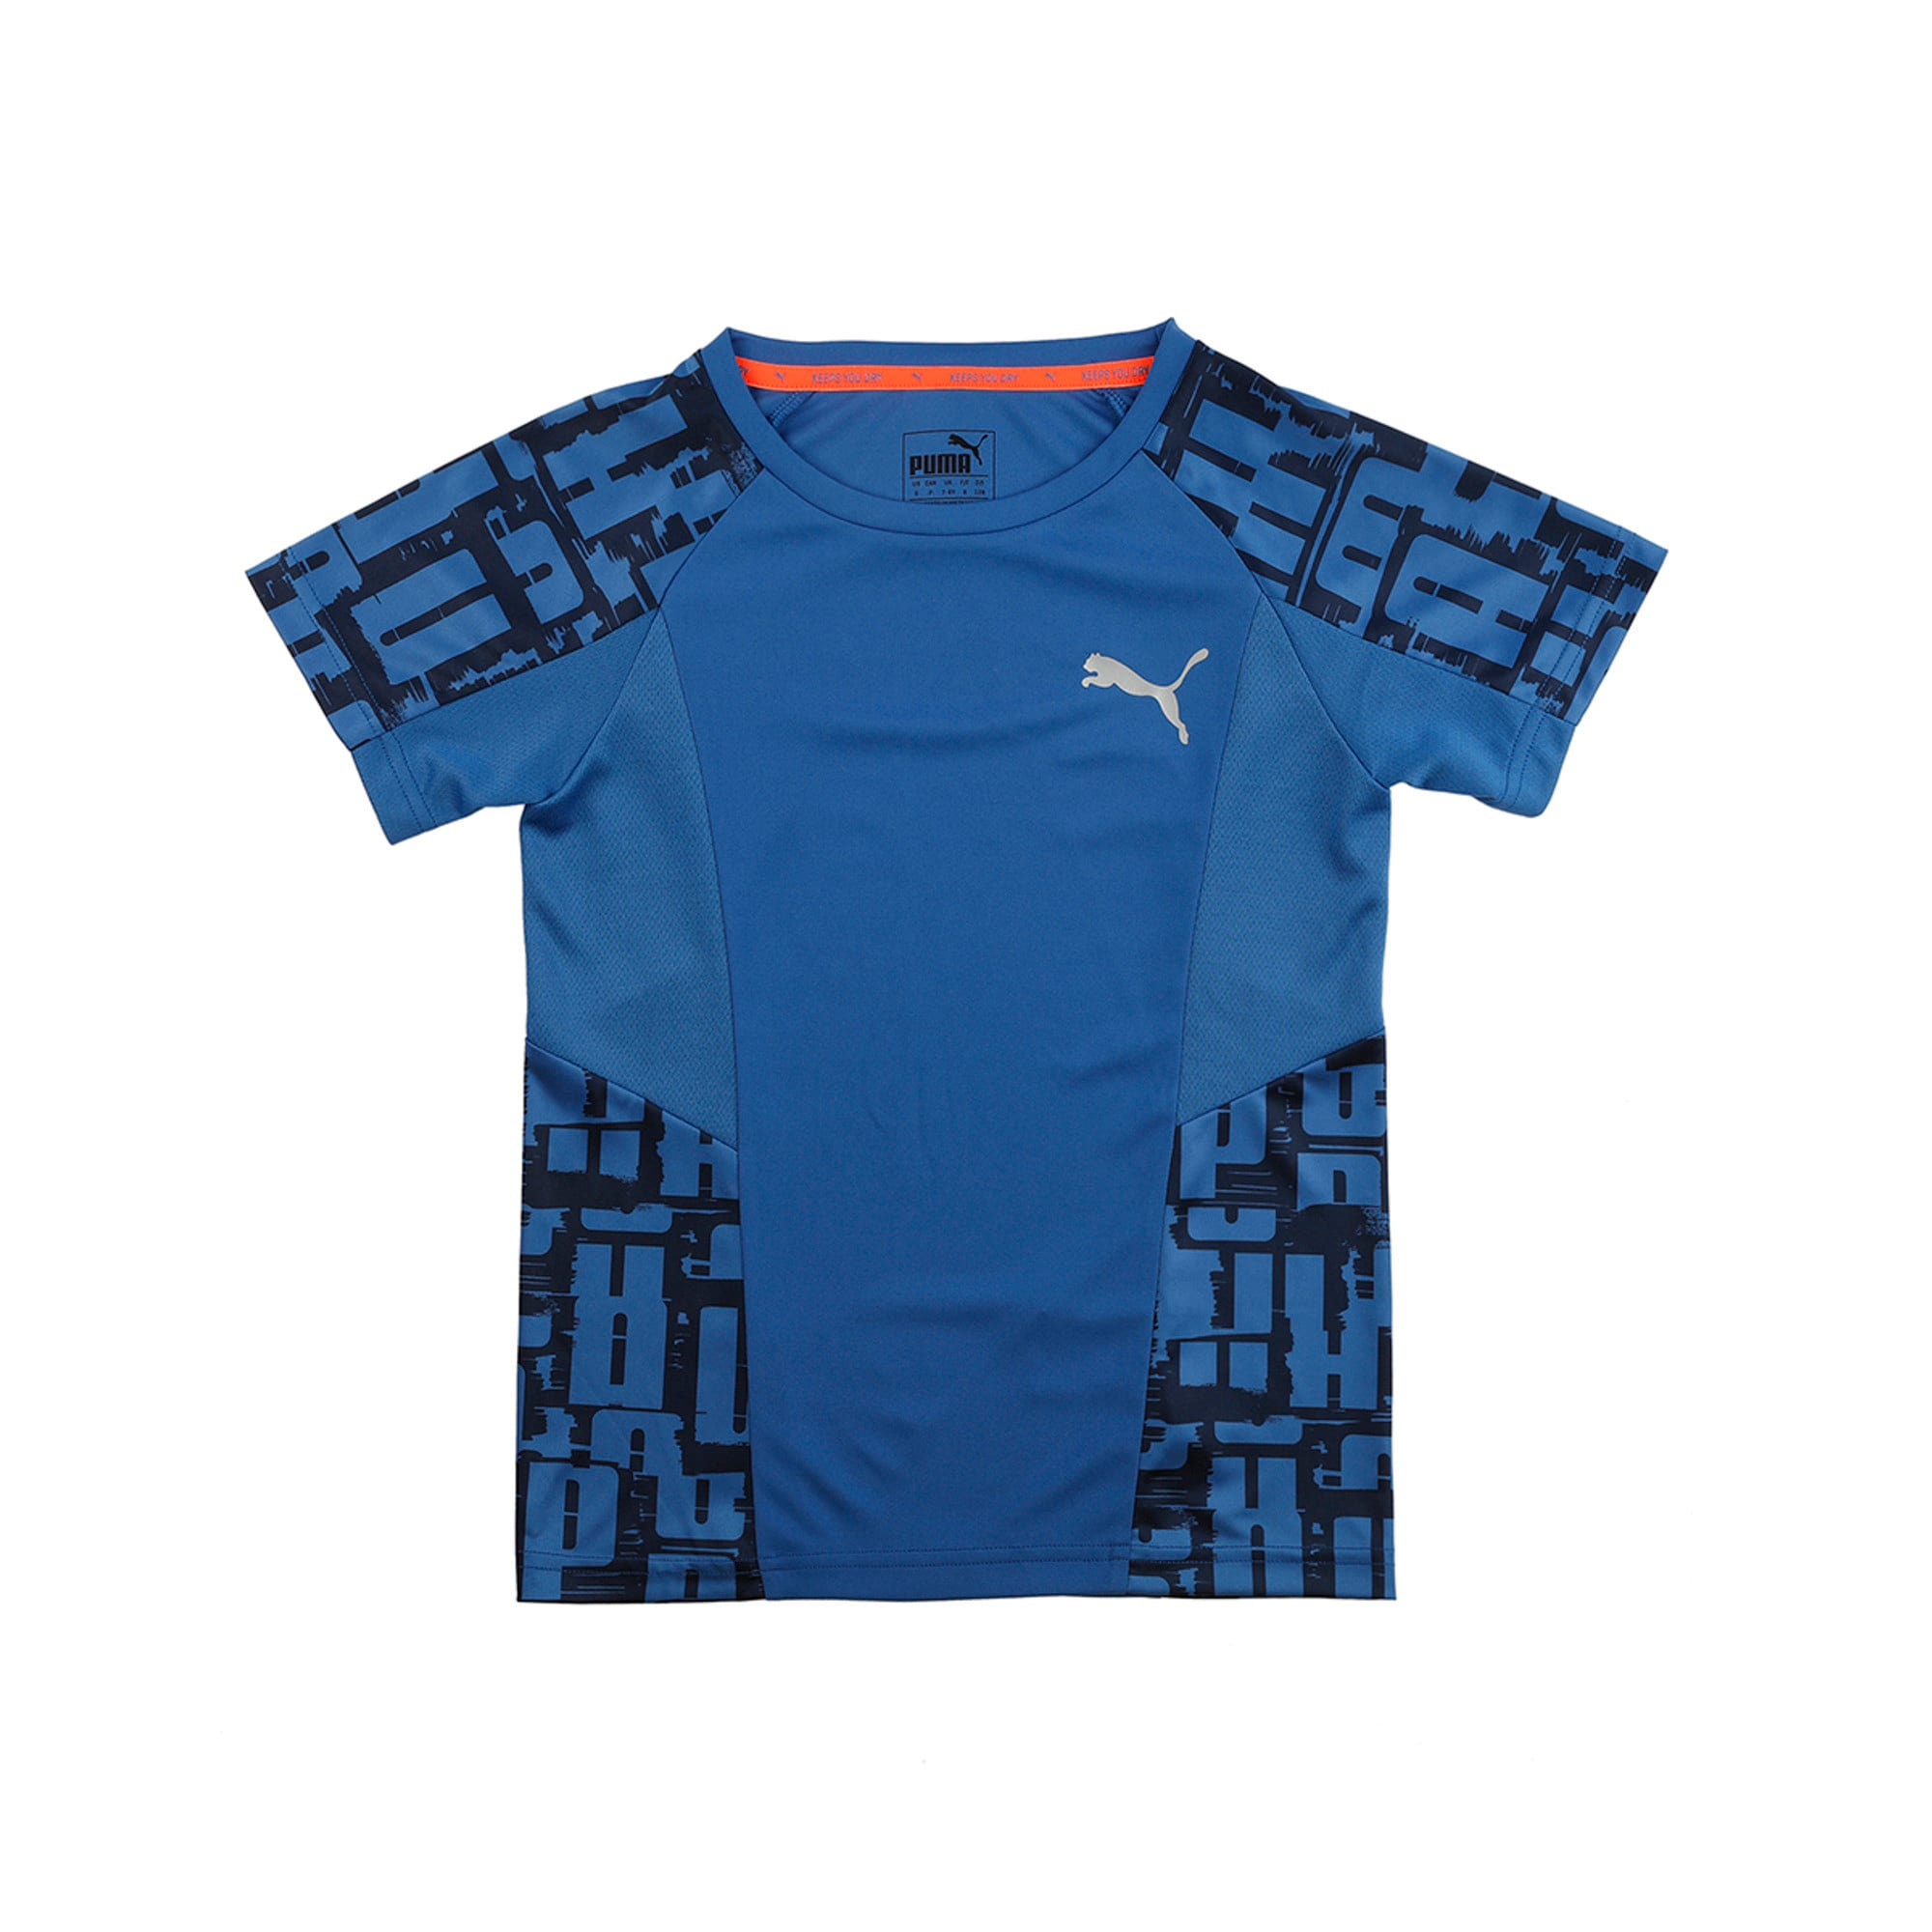 Active Sports Boys' Tee, Galaxy Blue, large-IND